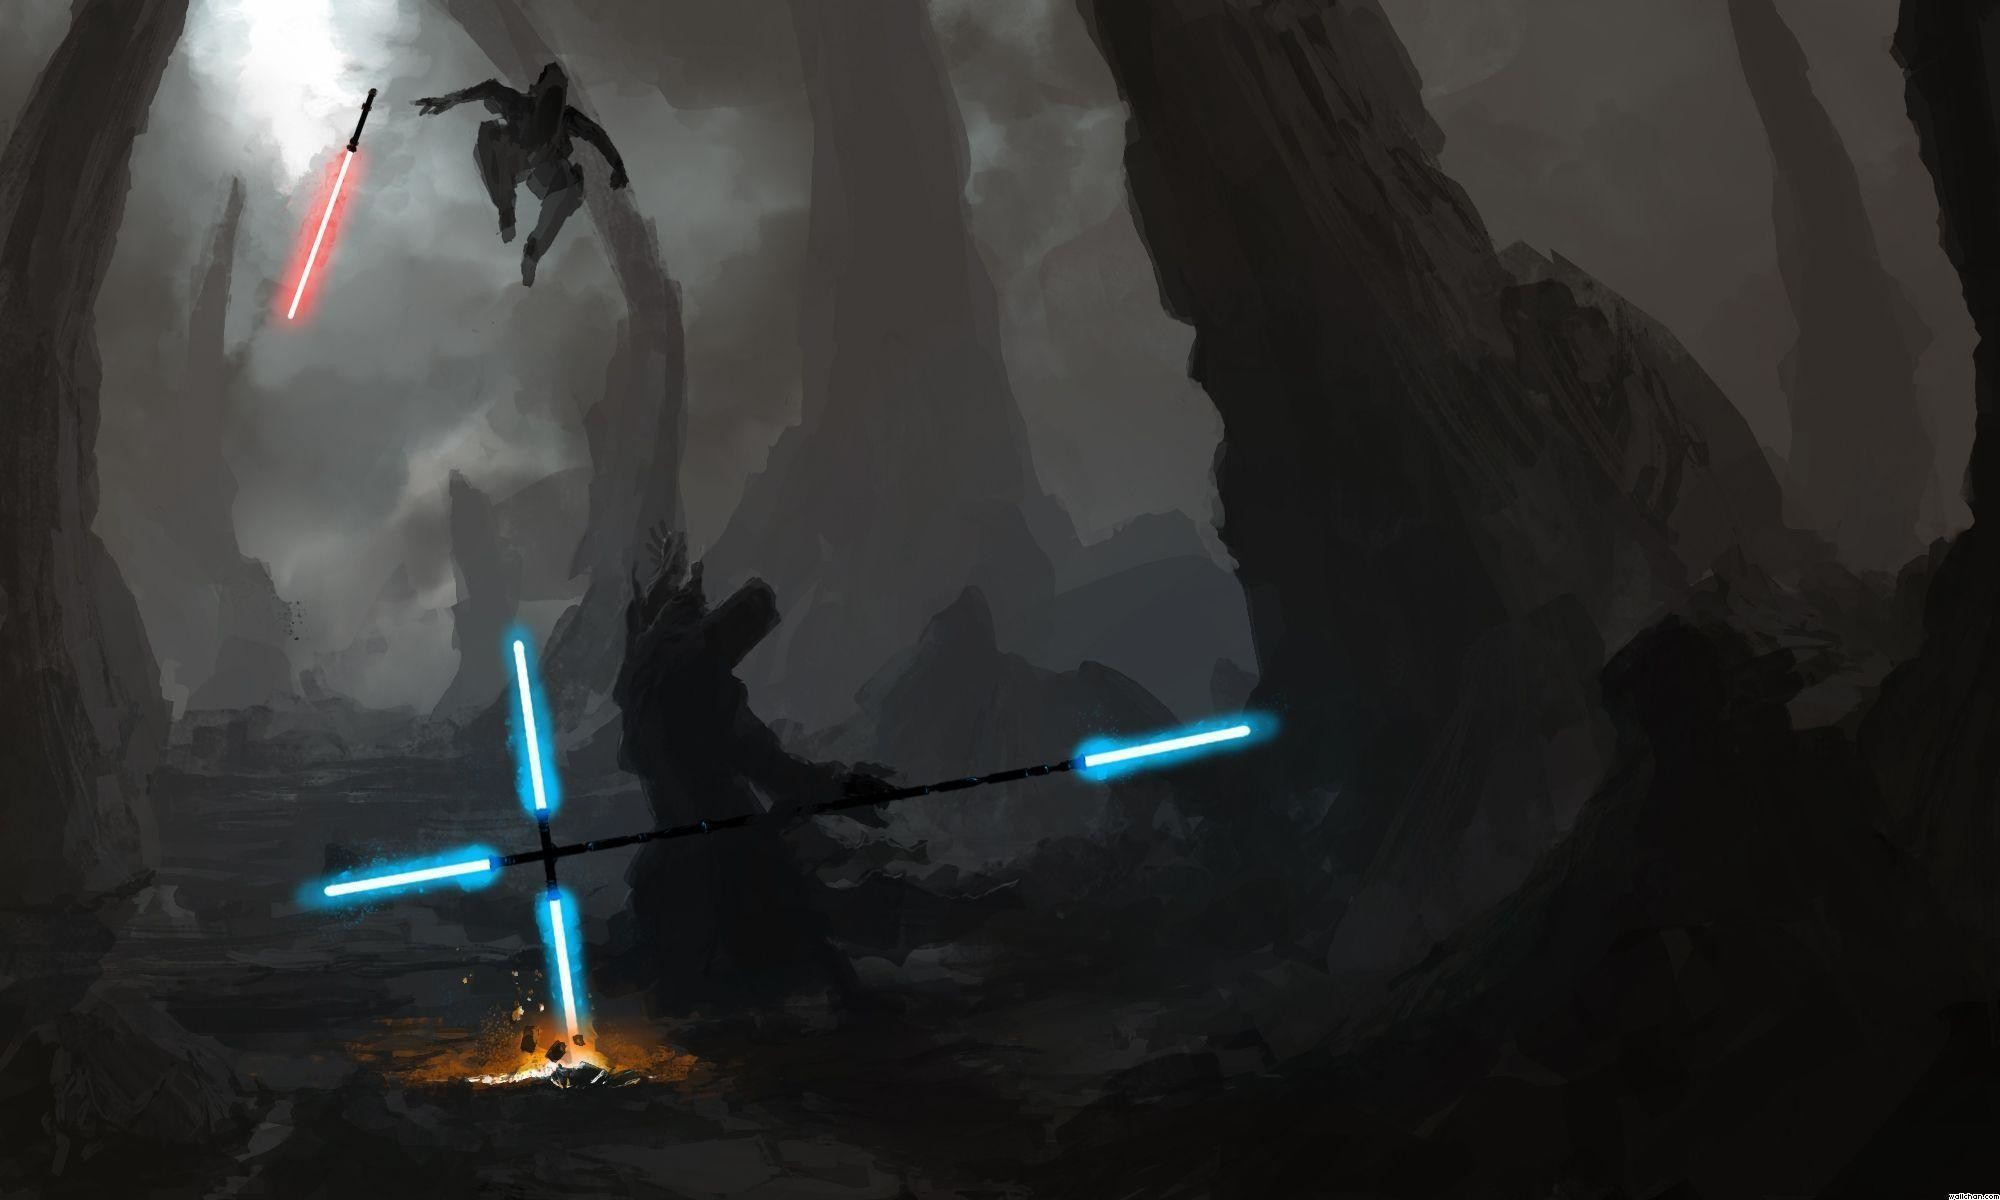 2000x1200 HD <b>Jedi Wallpaper</b> - WallpaperSafari